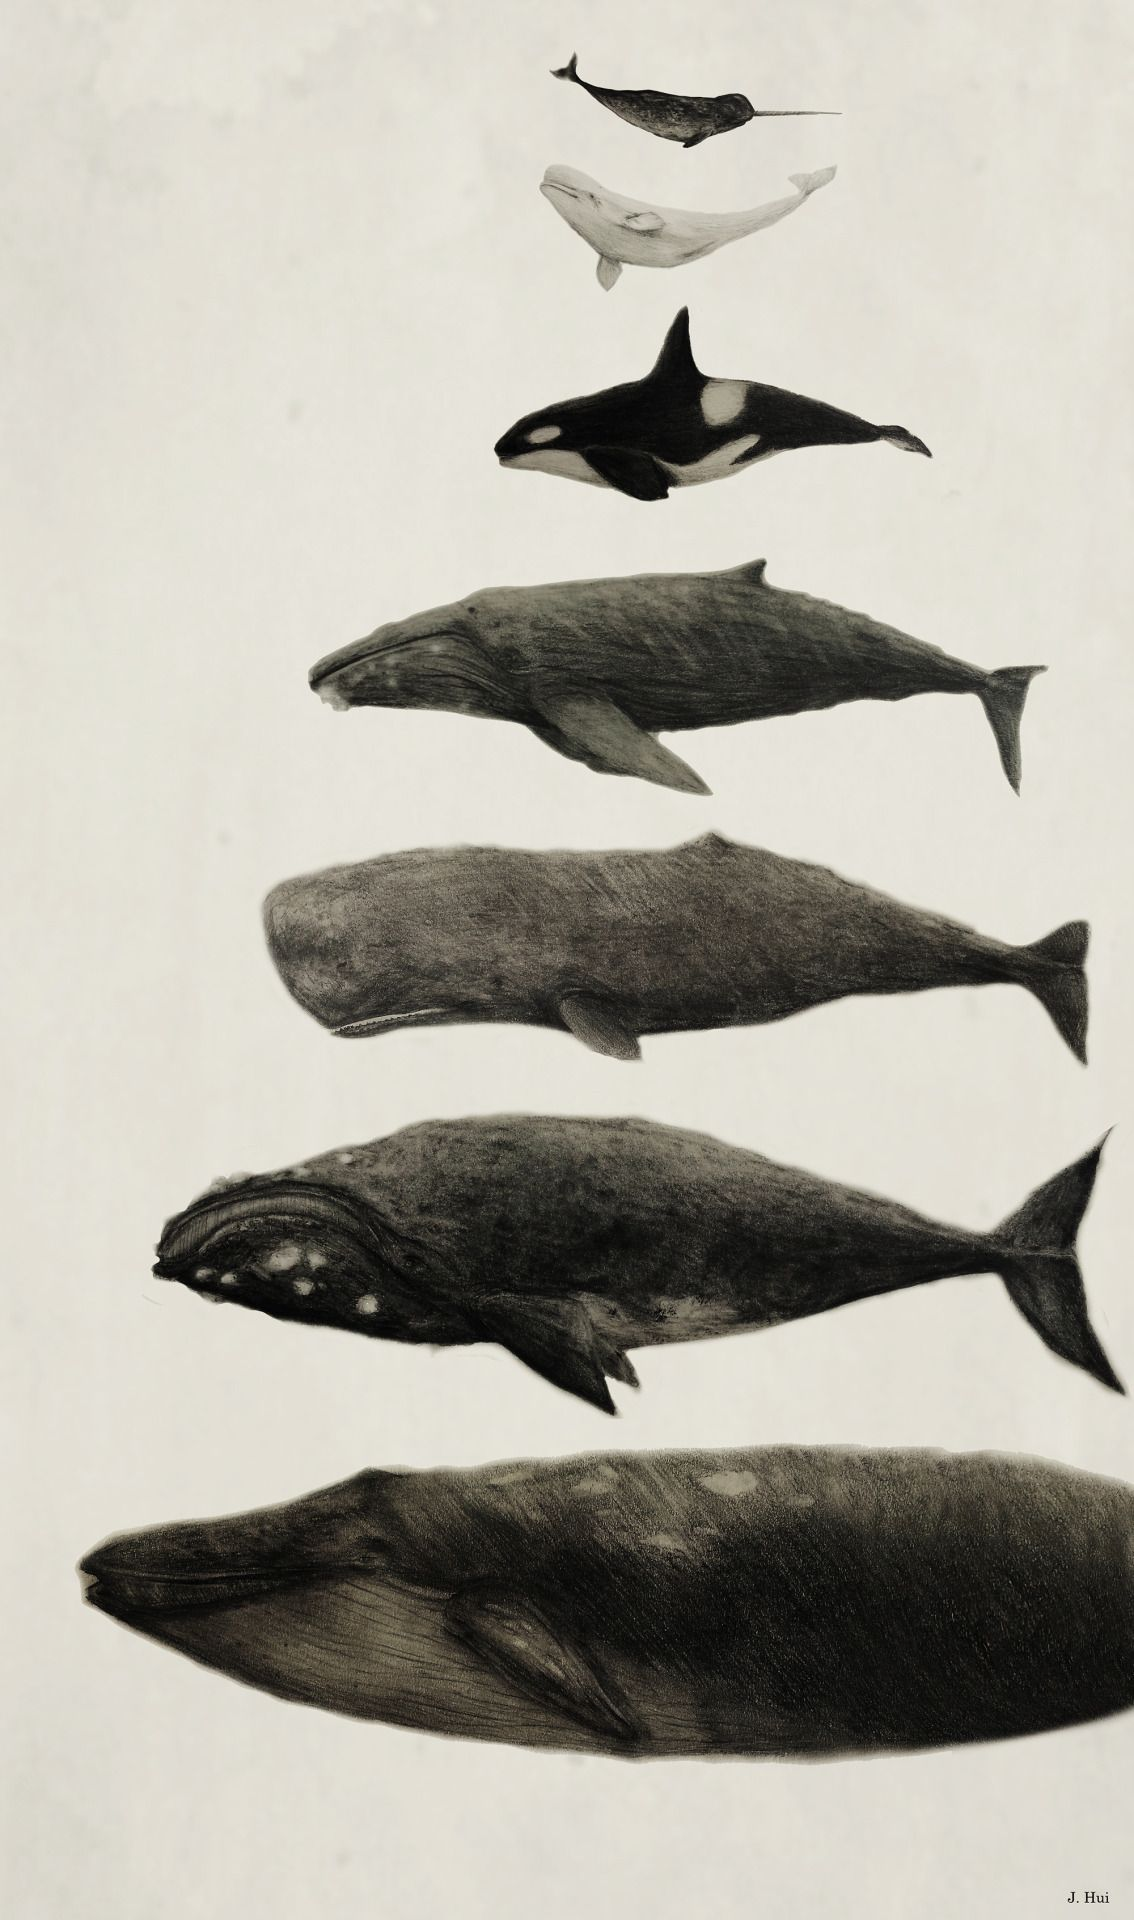 asterionellaa:Whales! From top to bottom: Narhwal, Beluga Whale ...